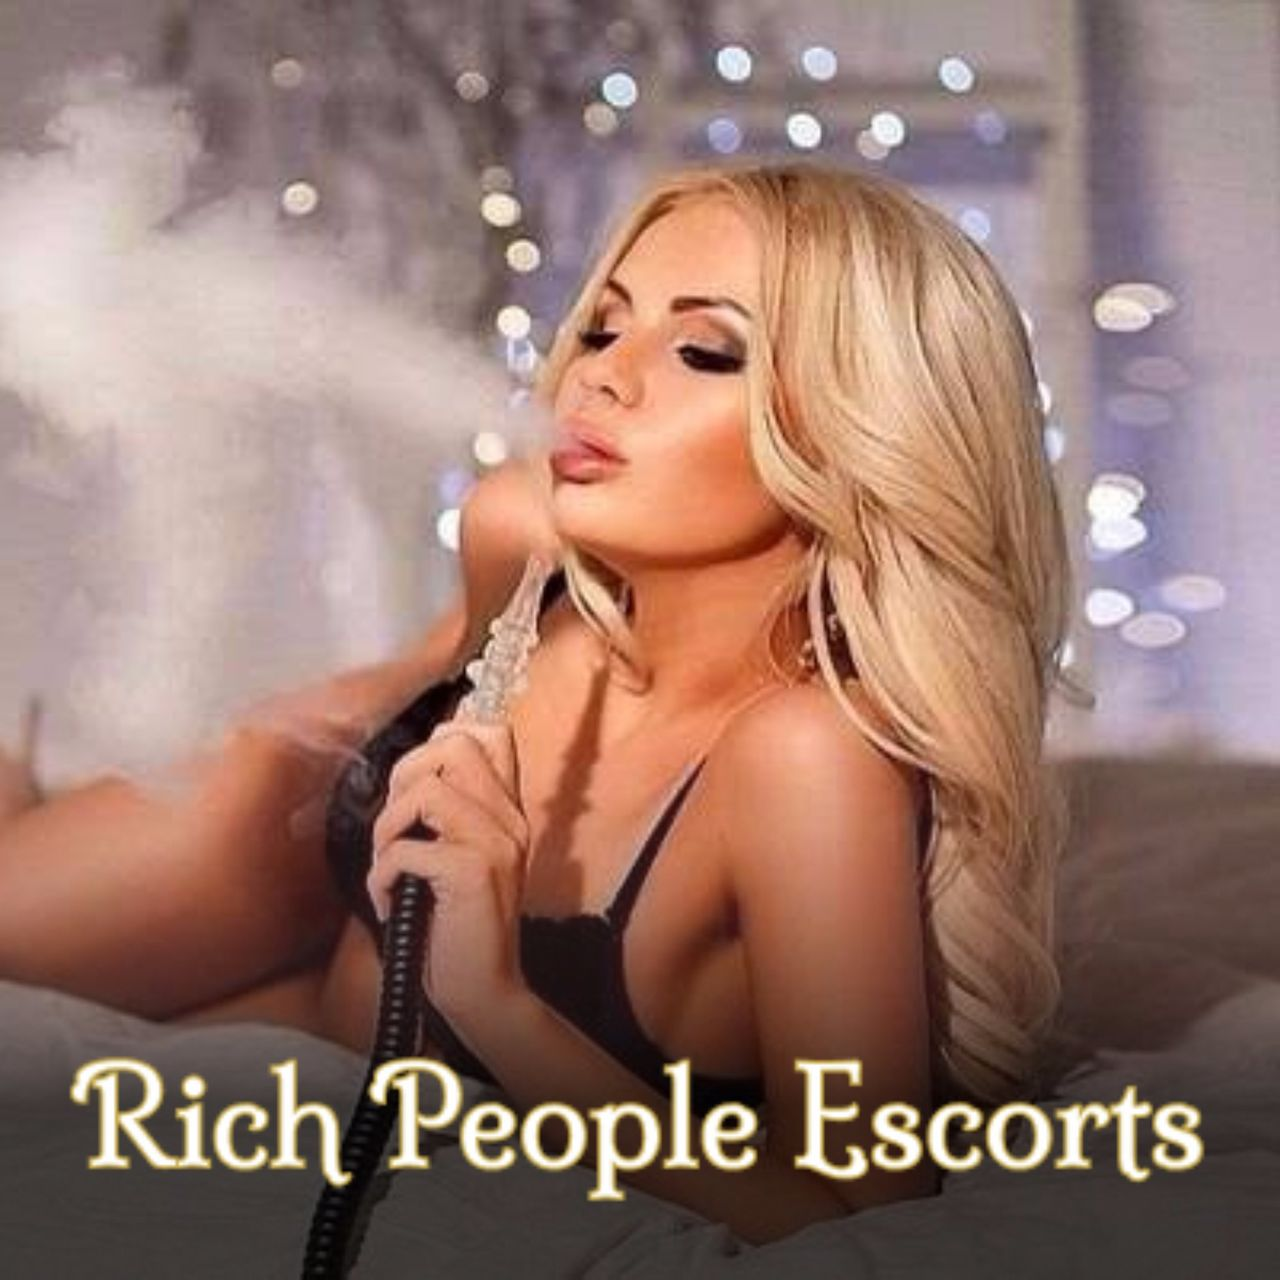 Rich People Escorts